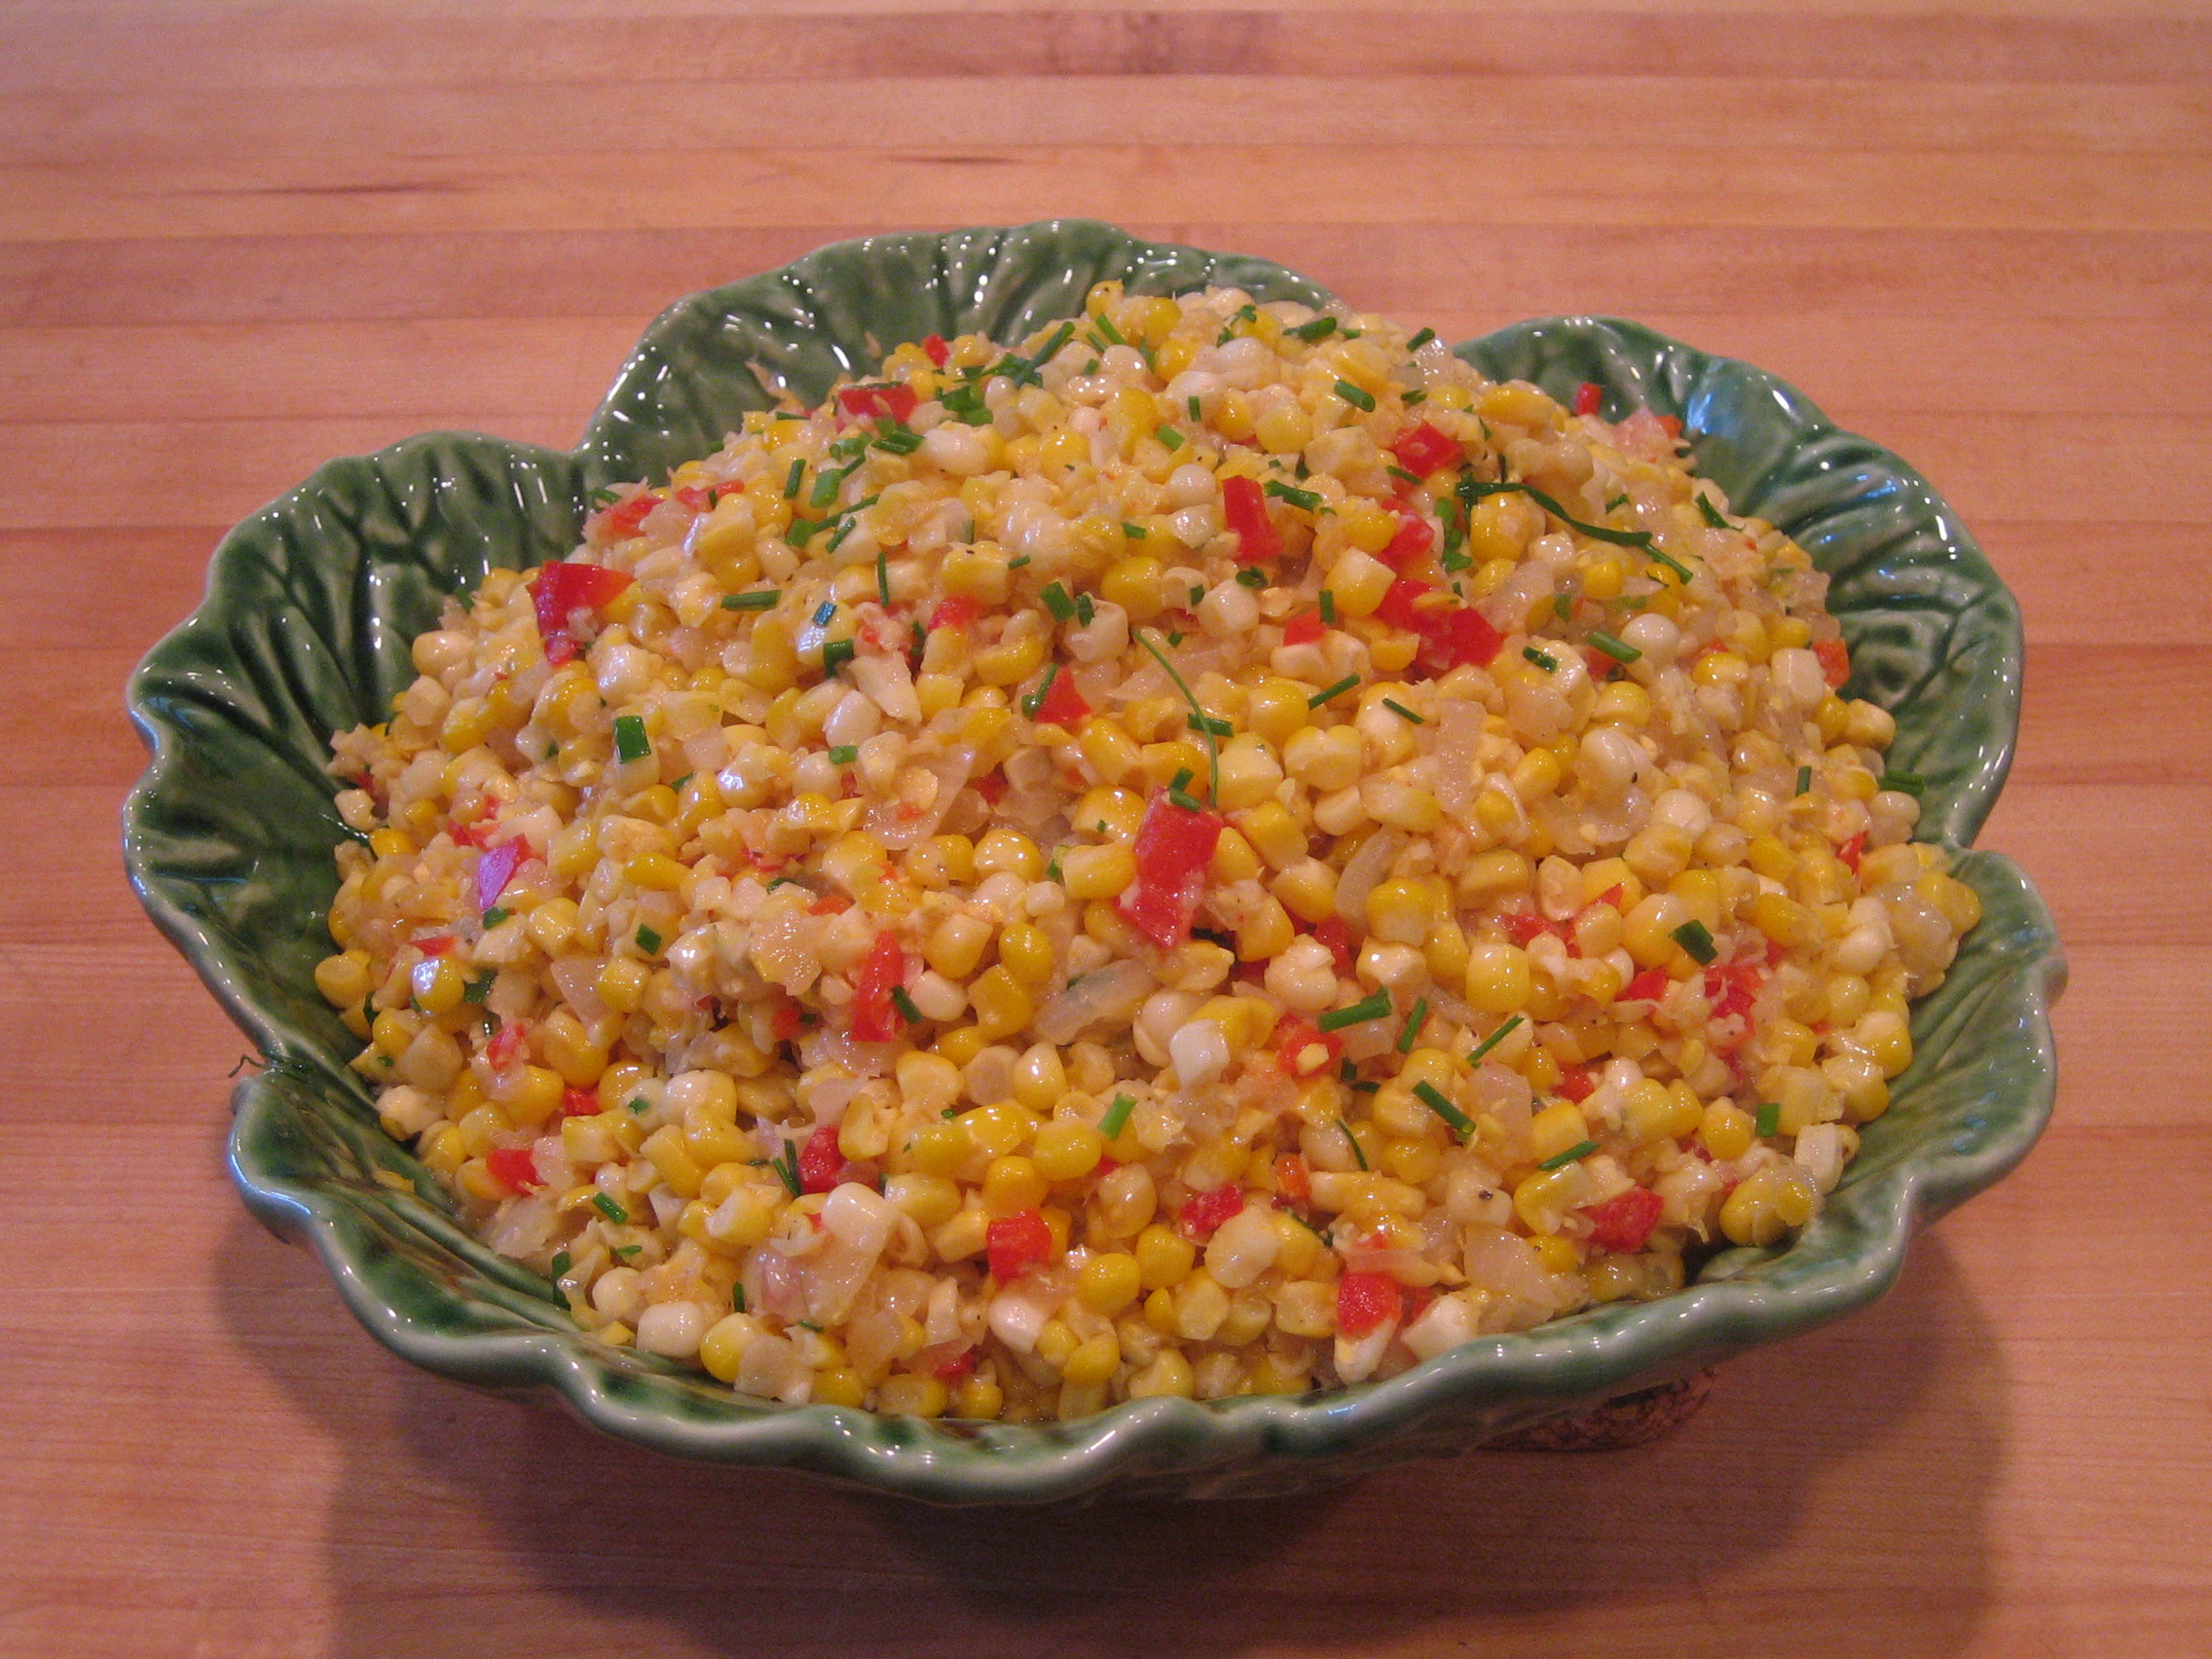 Sautéed Fresh Corn With Onions and Sweet Peppers and Natural Corn Cream picture